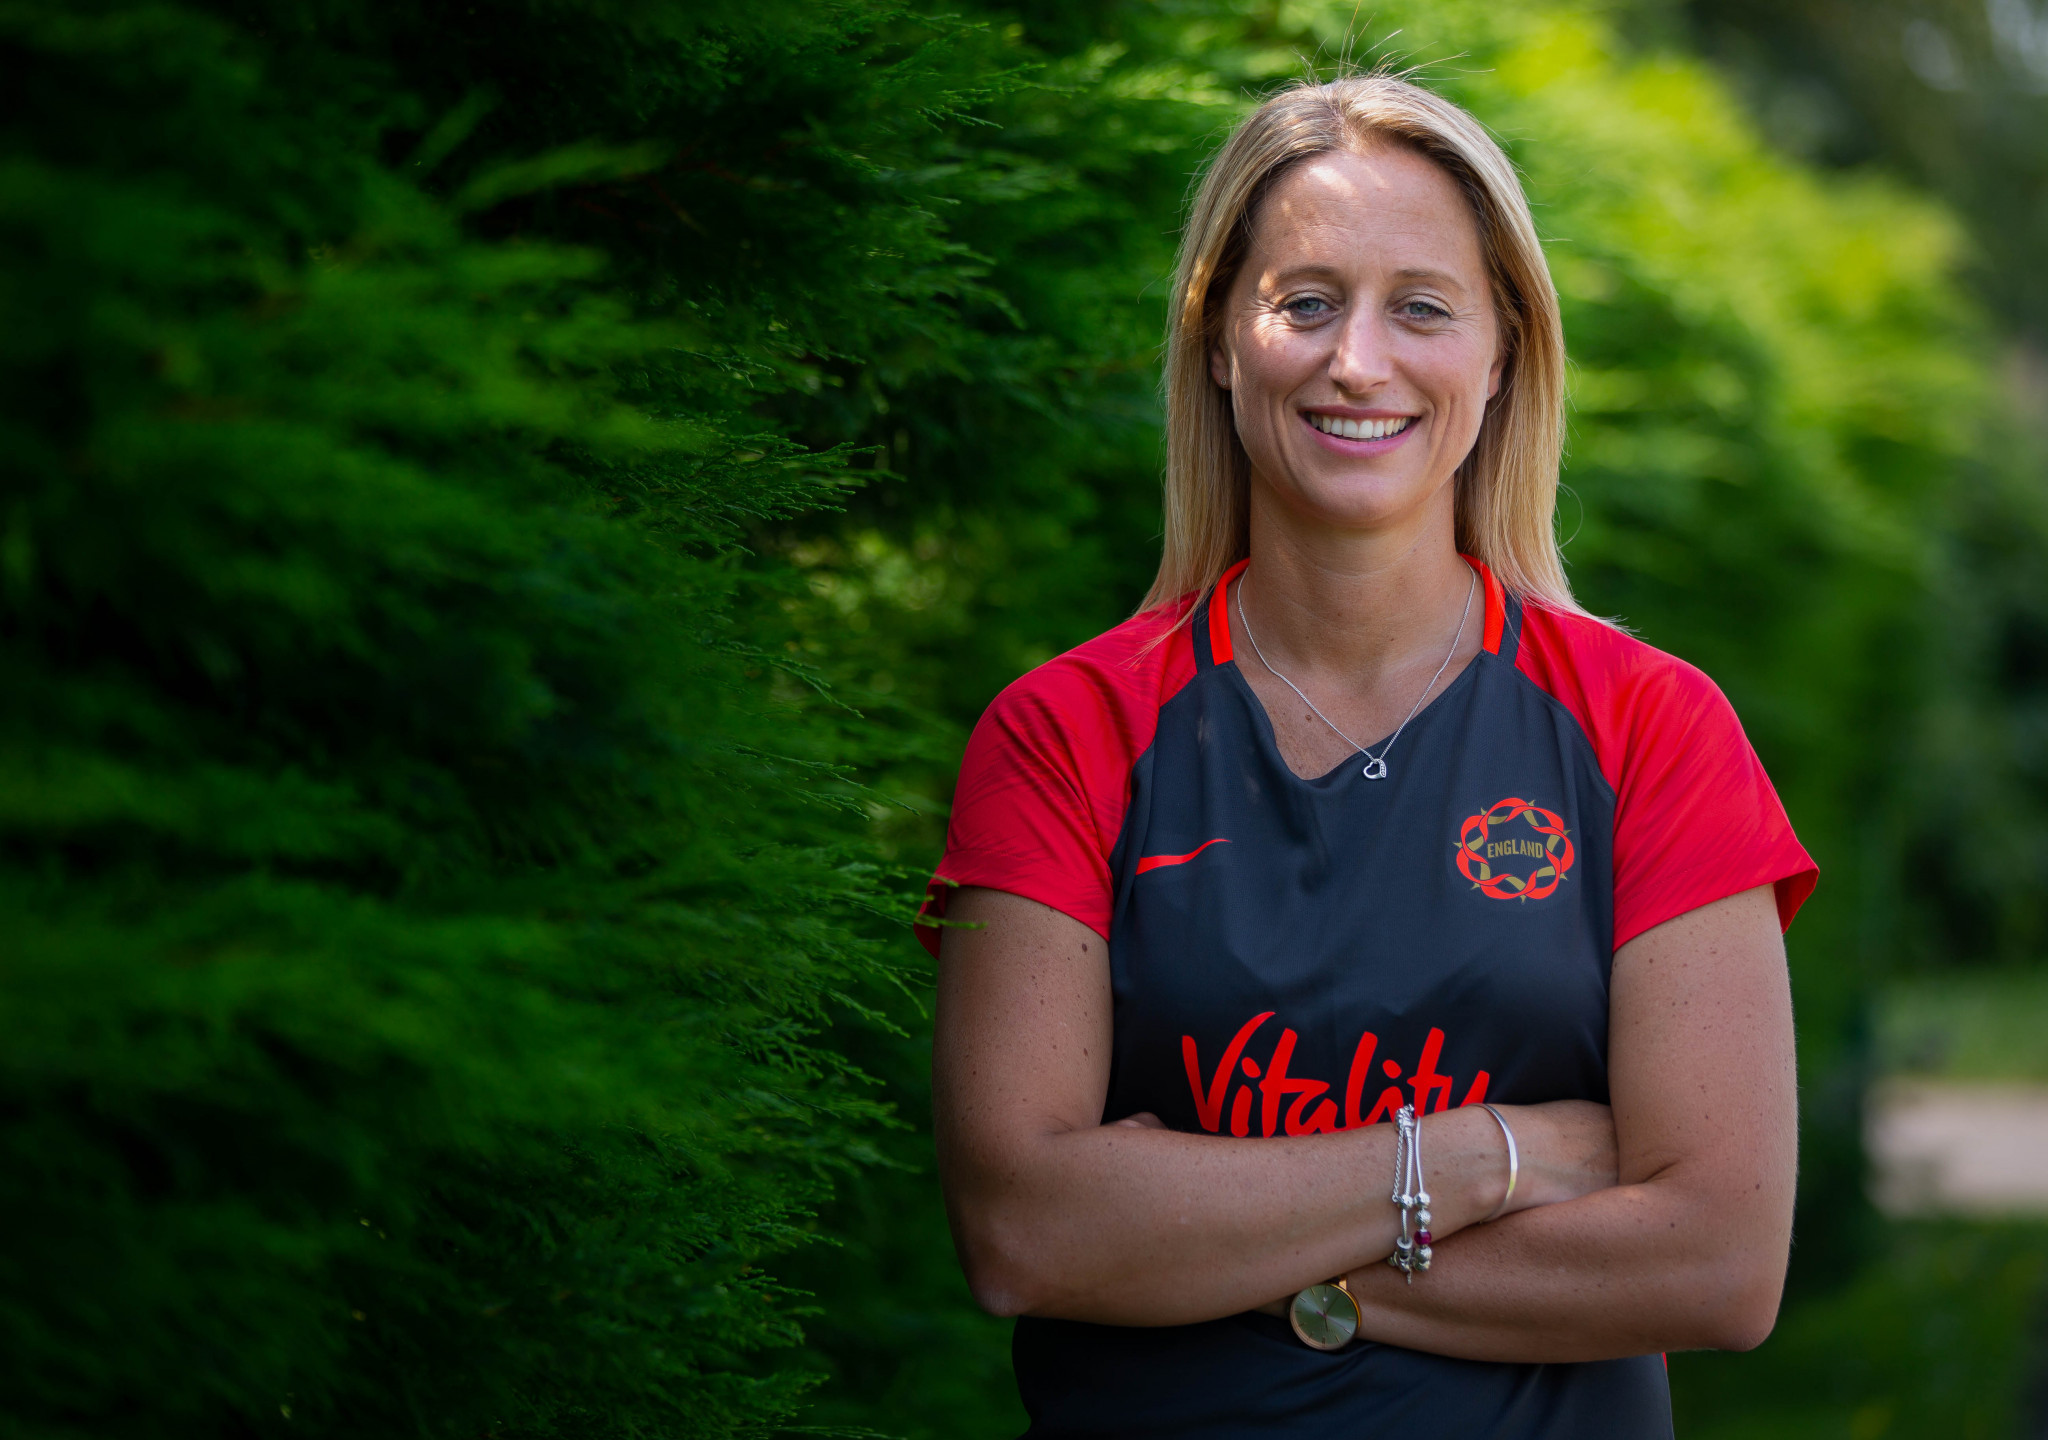 Thirlby appointed to replace Neville as England netball head coach